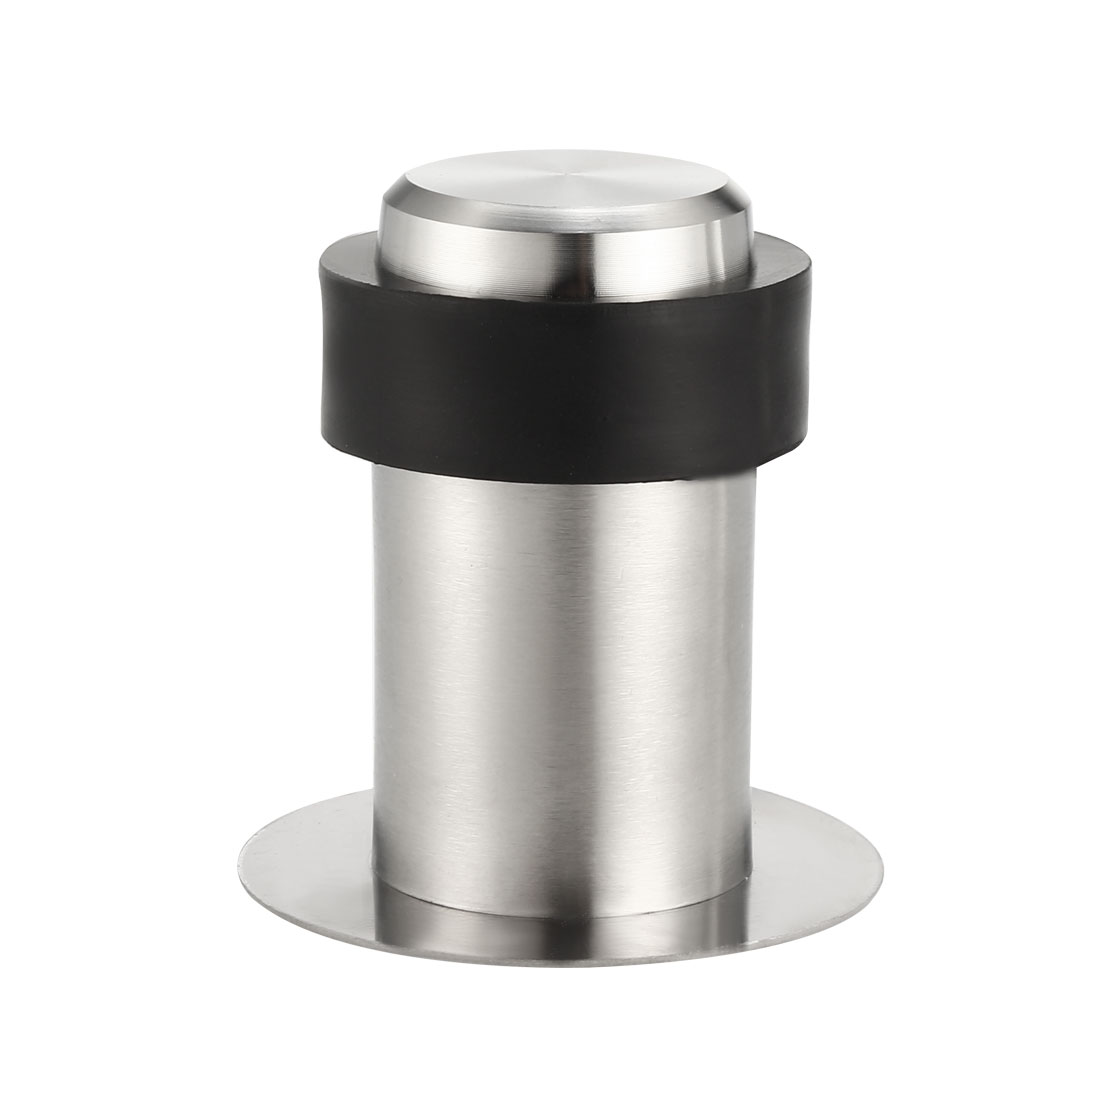 Stainless Steel Door Stopper Cylindrical Floor Mount Adhesive 60mm Height 2Pcs